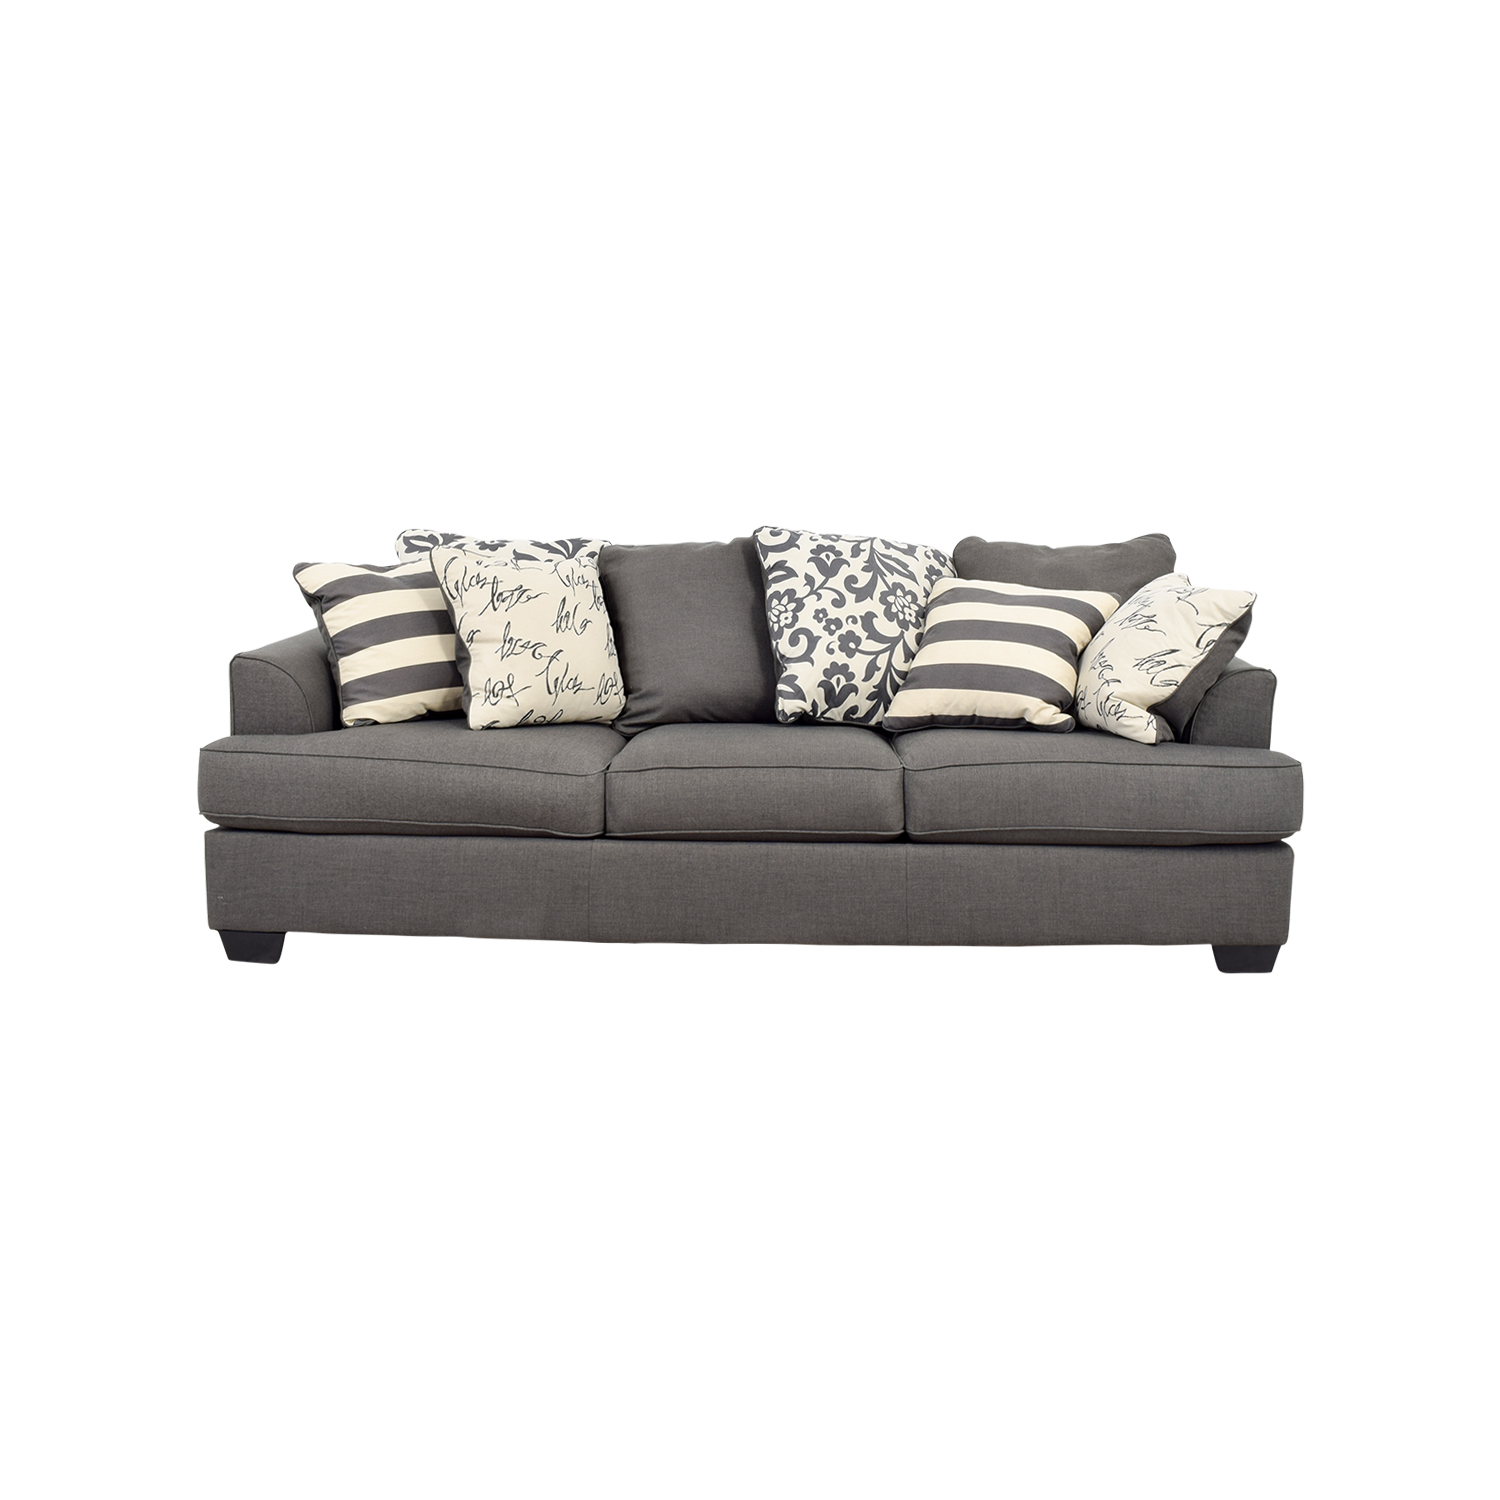 52% OFF Ashley Furniture Ashley Furniture Levon Grey Sofa Sofas